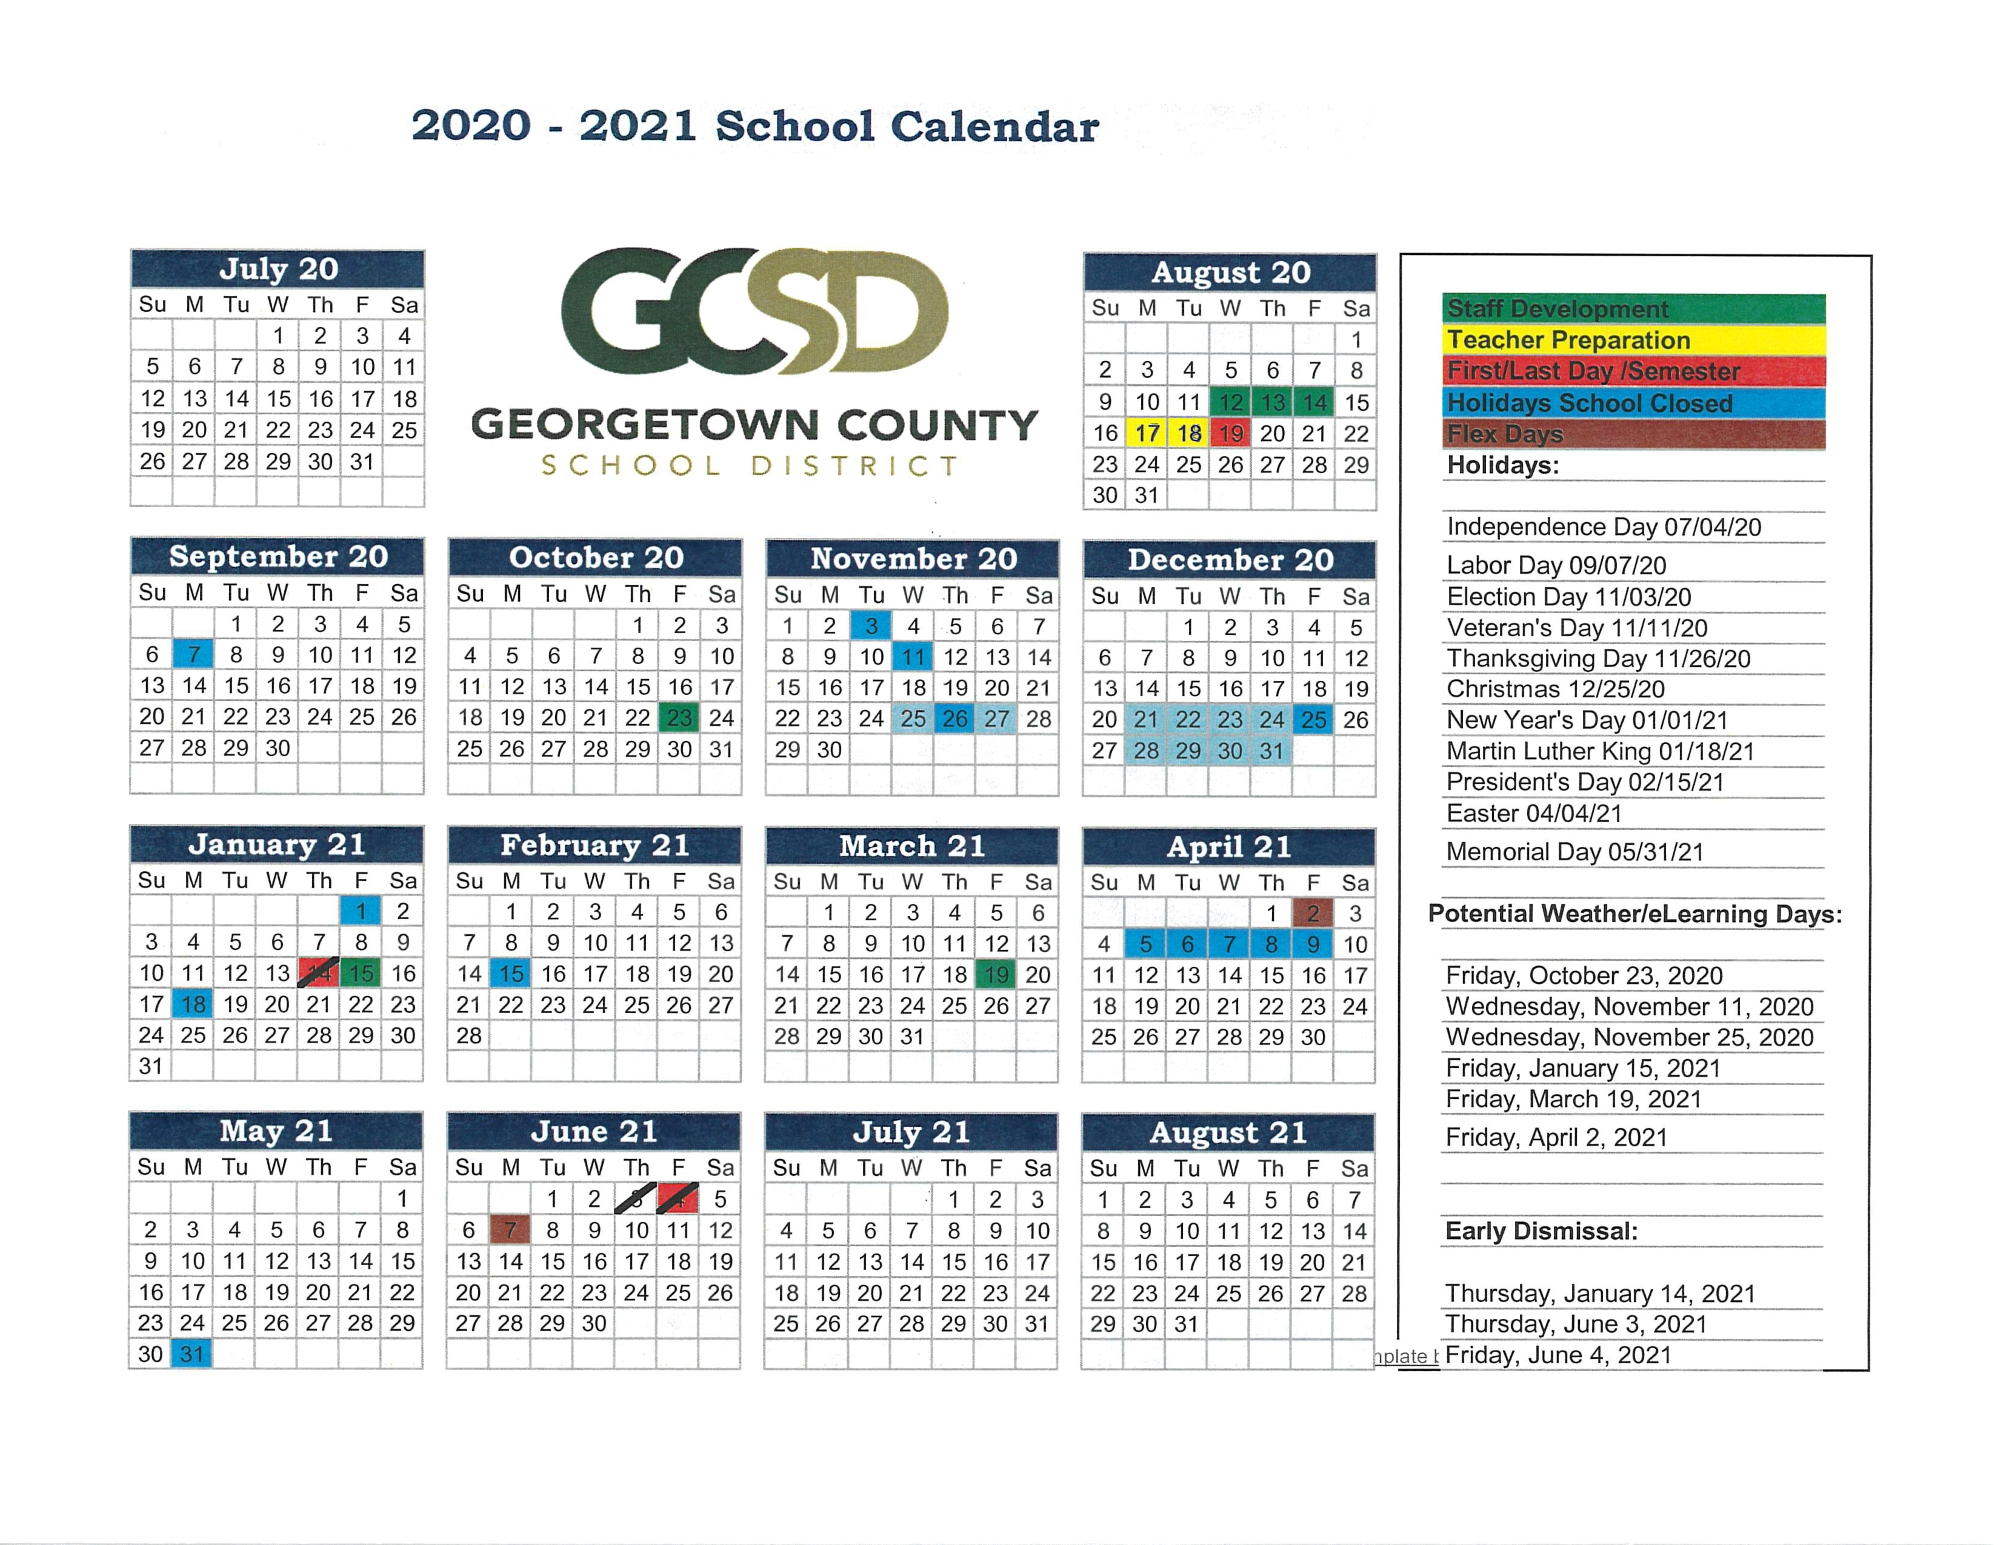 2020-2021 School Year Calendar - Georgetown County School pertaining to Georgetown County School District Calendar